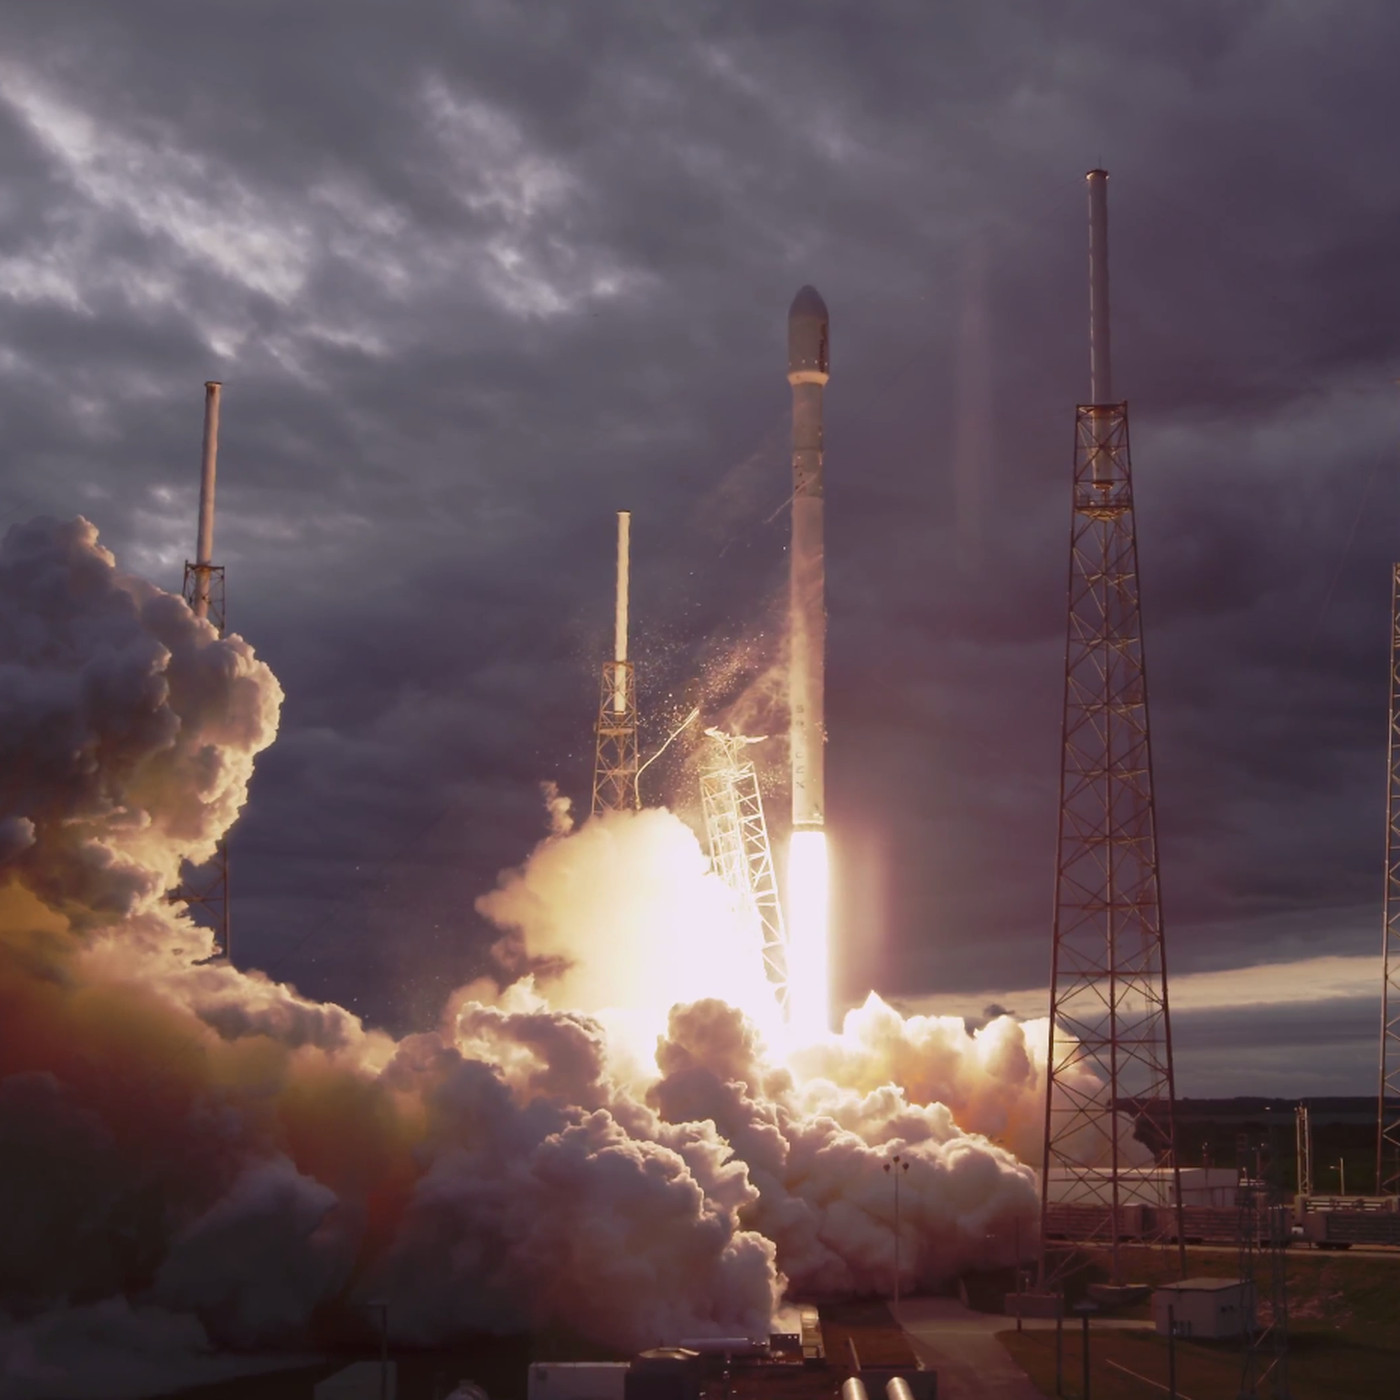 SpaceX Just Released Some Gorgeous 4K Rocket Launch Footage